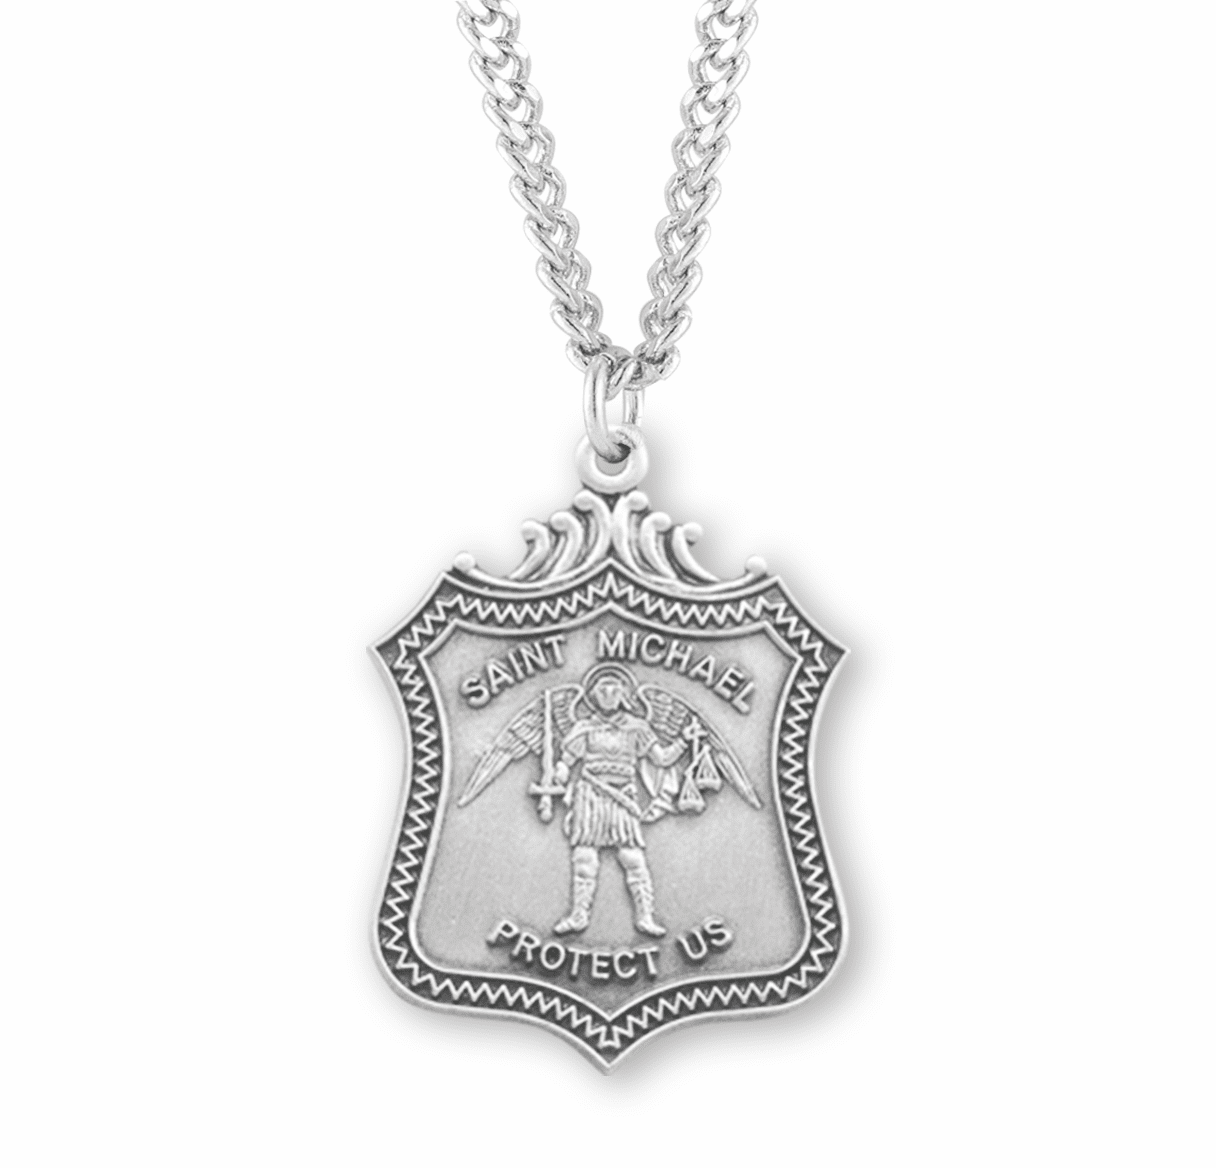 HMH Religious S Michael Protect Us Shield Sterling Silver Medal Necklace